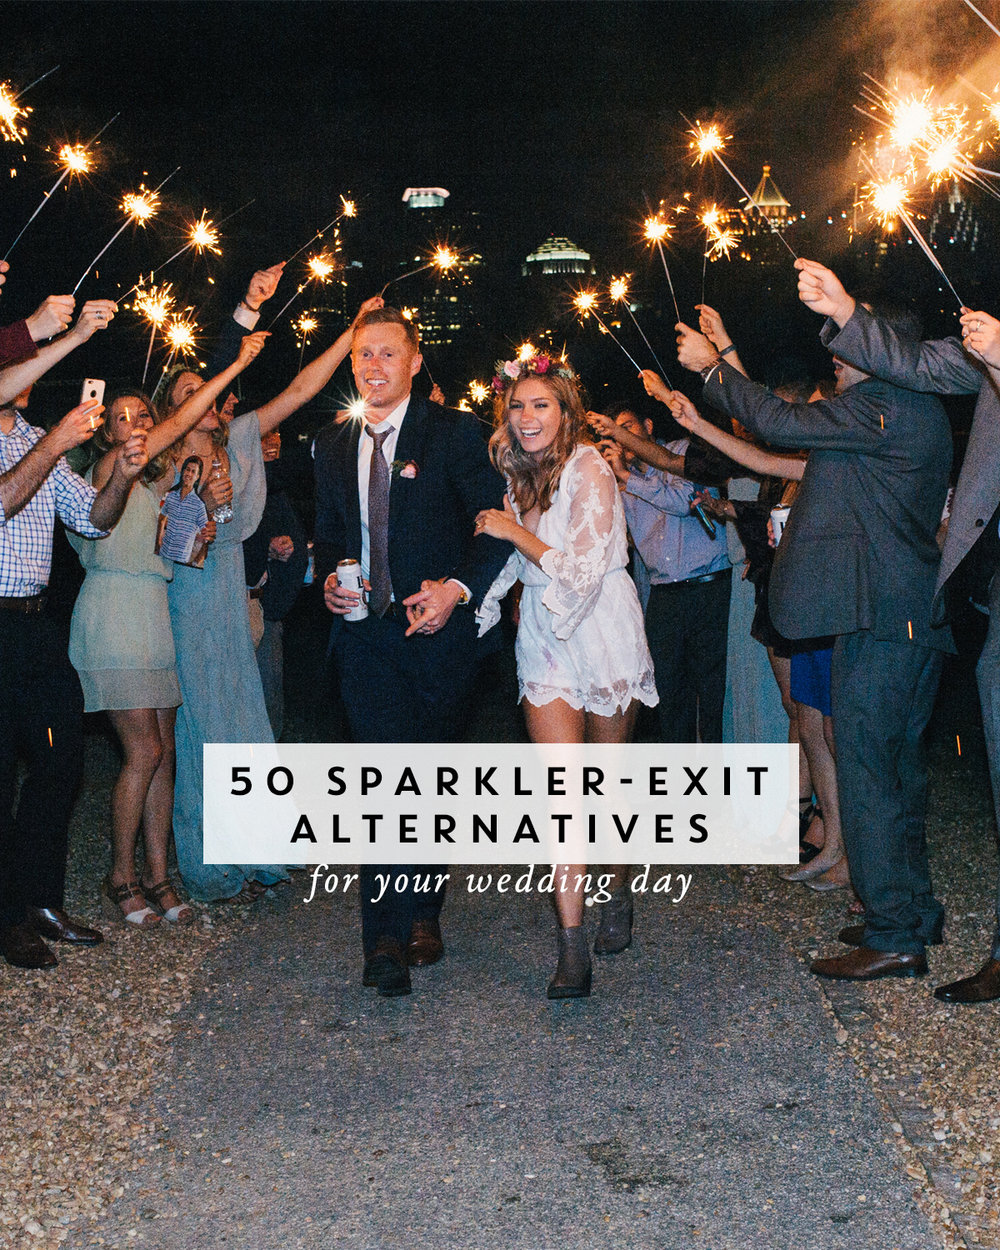 50-sparkler-exit-alternatives-at-your-wedding